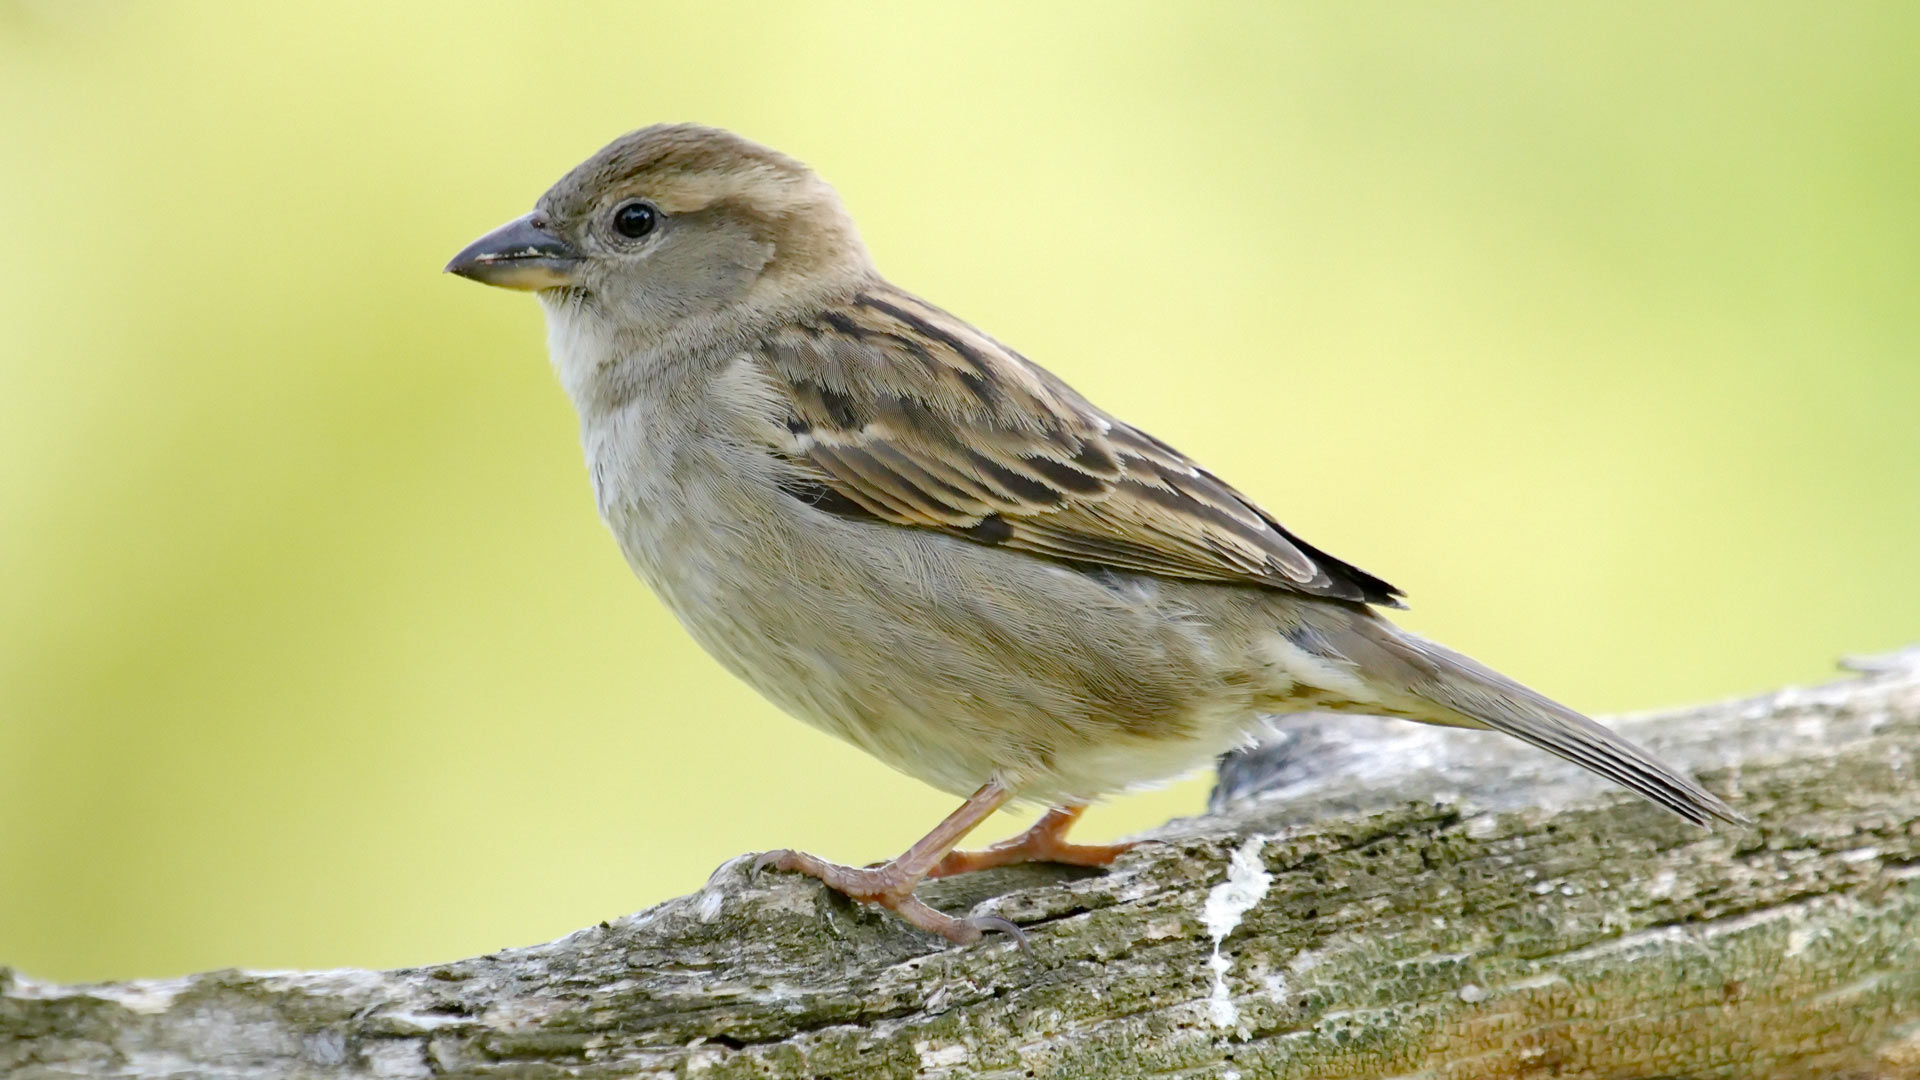 One female sparrow standing on a branch